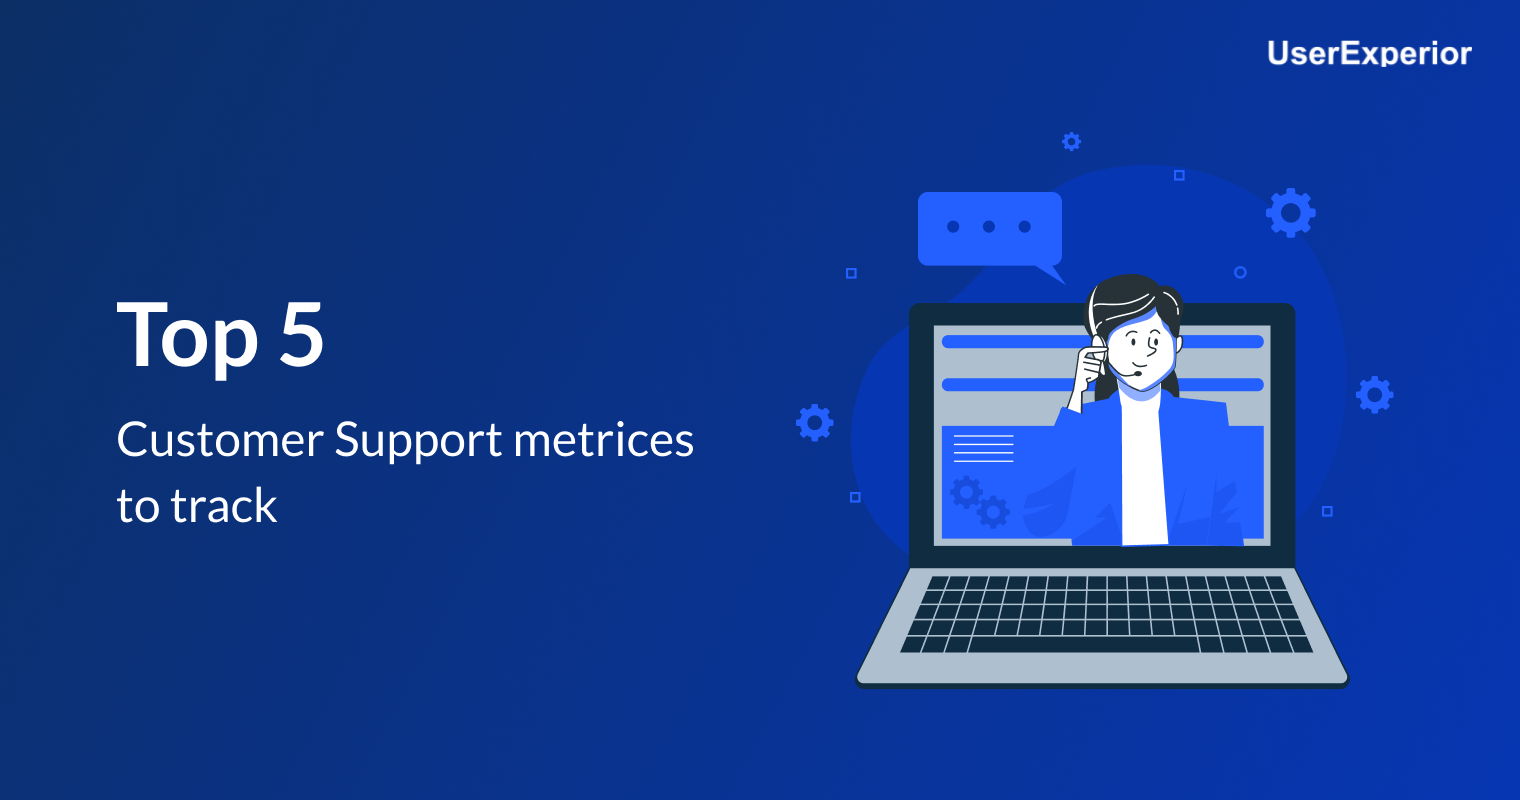 Top 5 Customer Support Metrics to Track